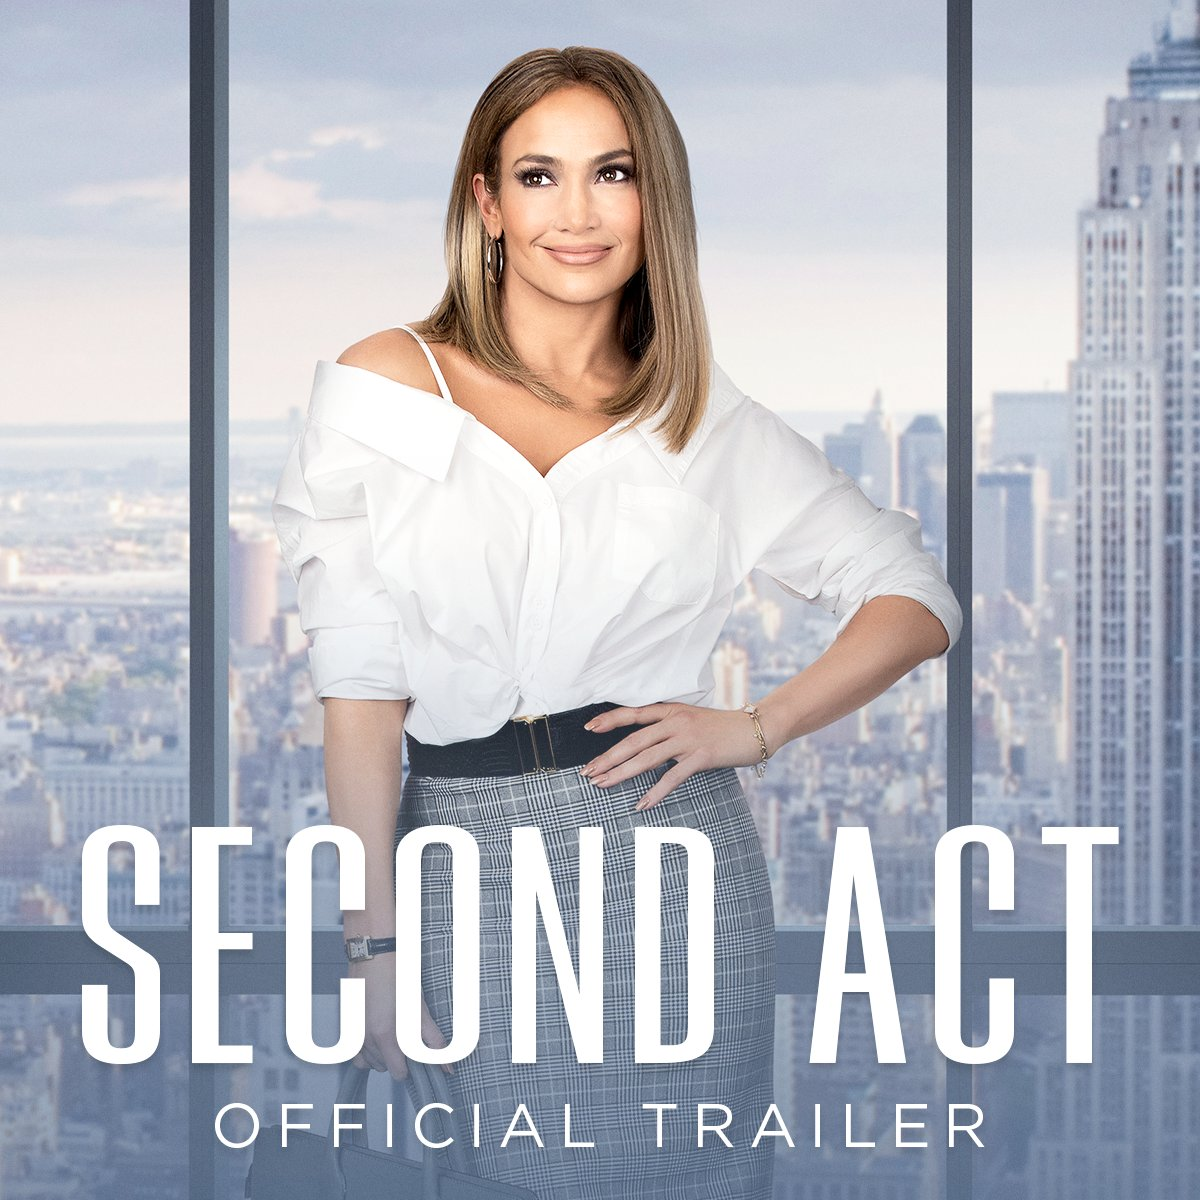 No guts, no glory...here's the trailer for my new film #SECONDACT and I know you will love it. This one is near and dear to my heart. It hits theaters November 21 but get your first look at it right here.